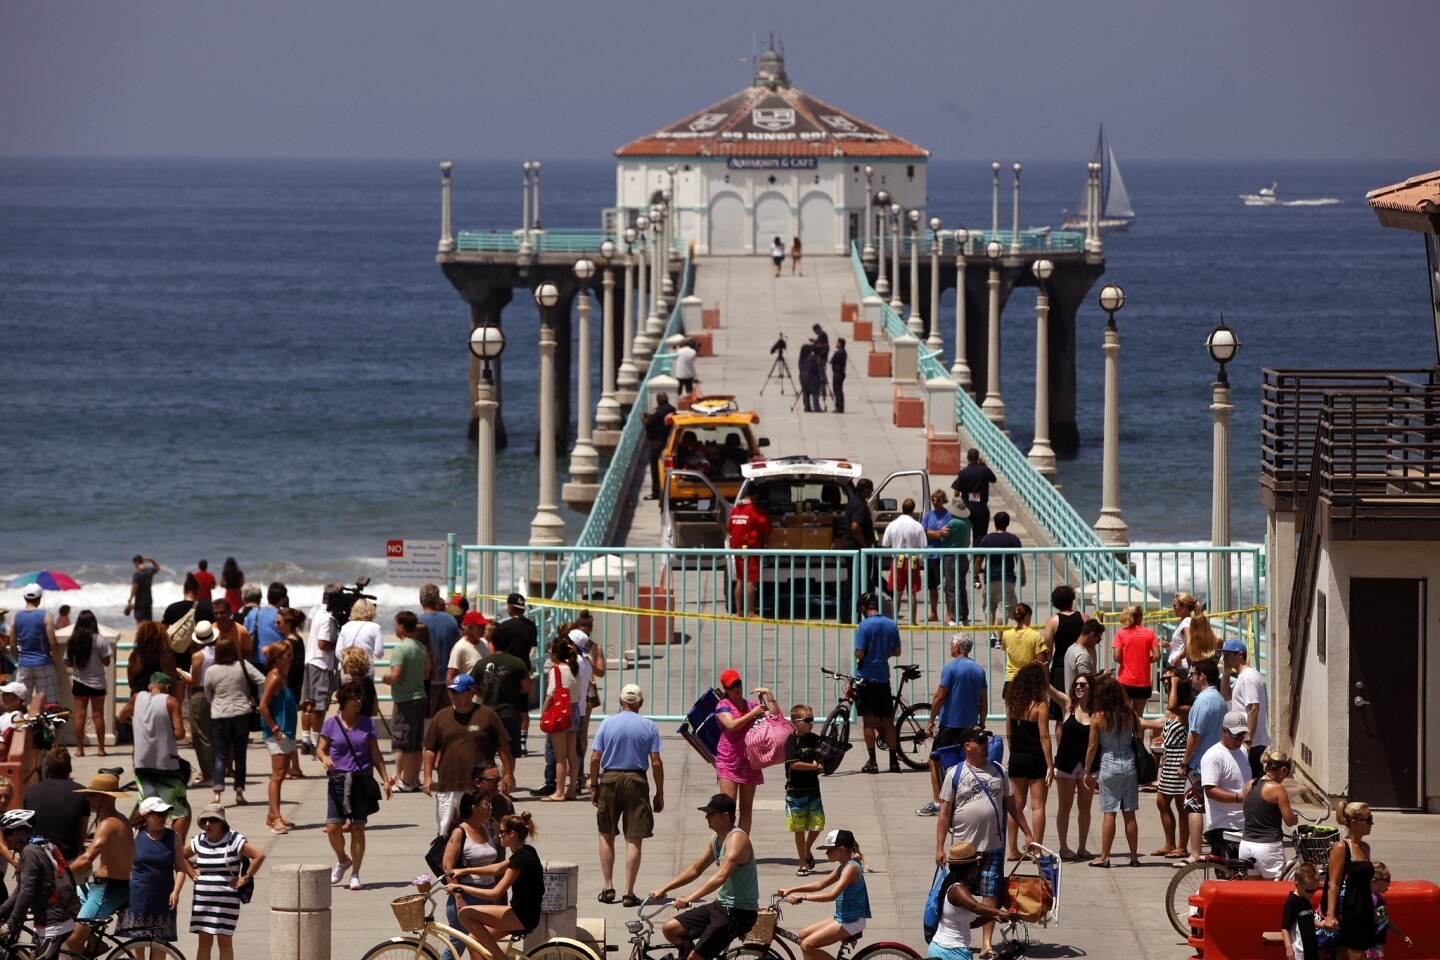 A man fishing from the Manhattan Beach pier hooked the shark and had it on his line for about an hour before the bite.